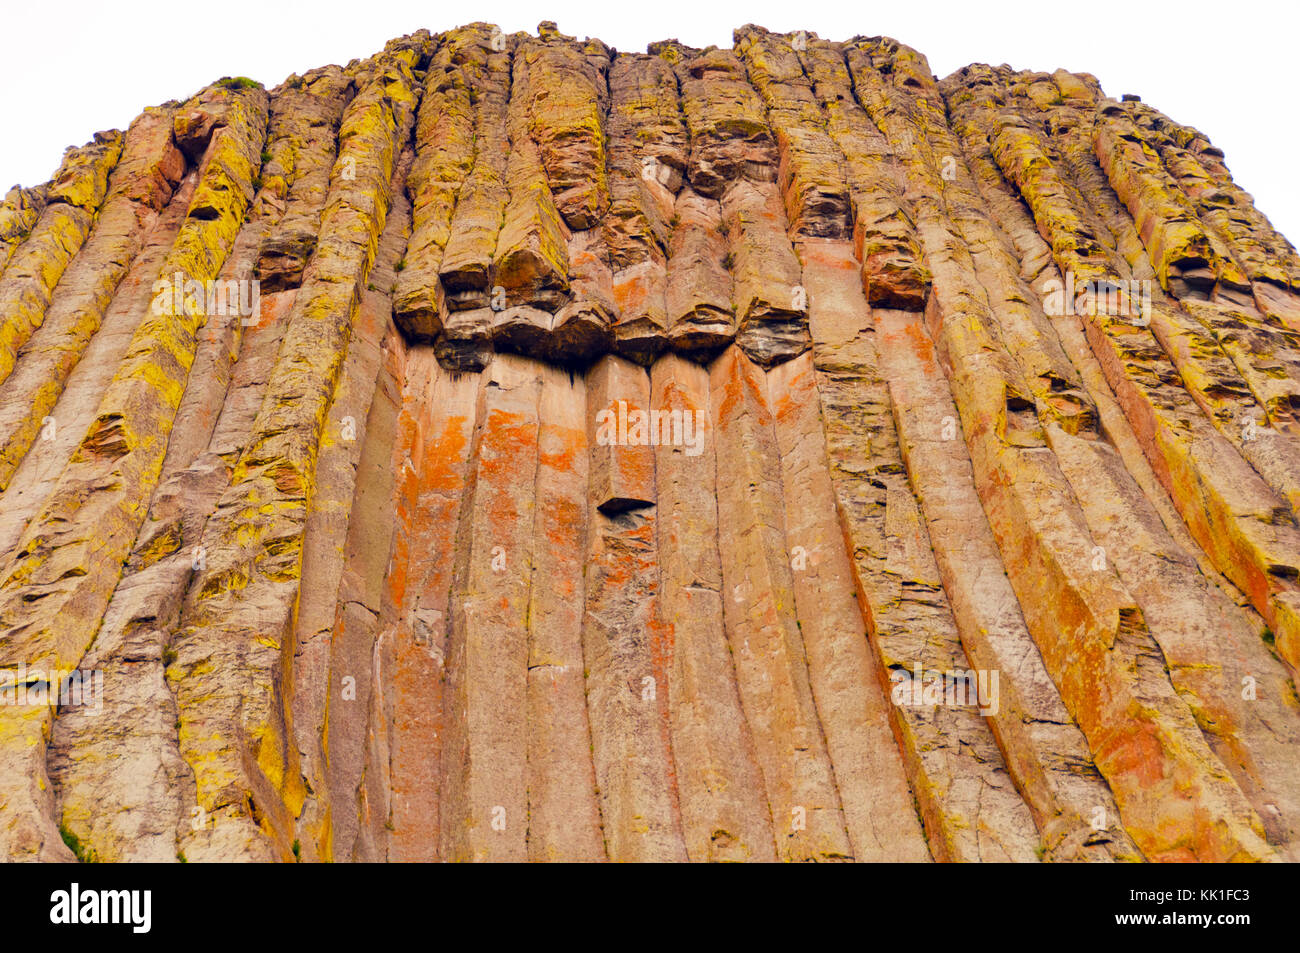 Basaltic Columns in Devils Tower in Wyoming - Stock Image